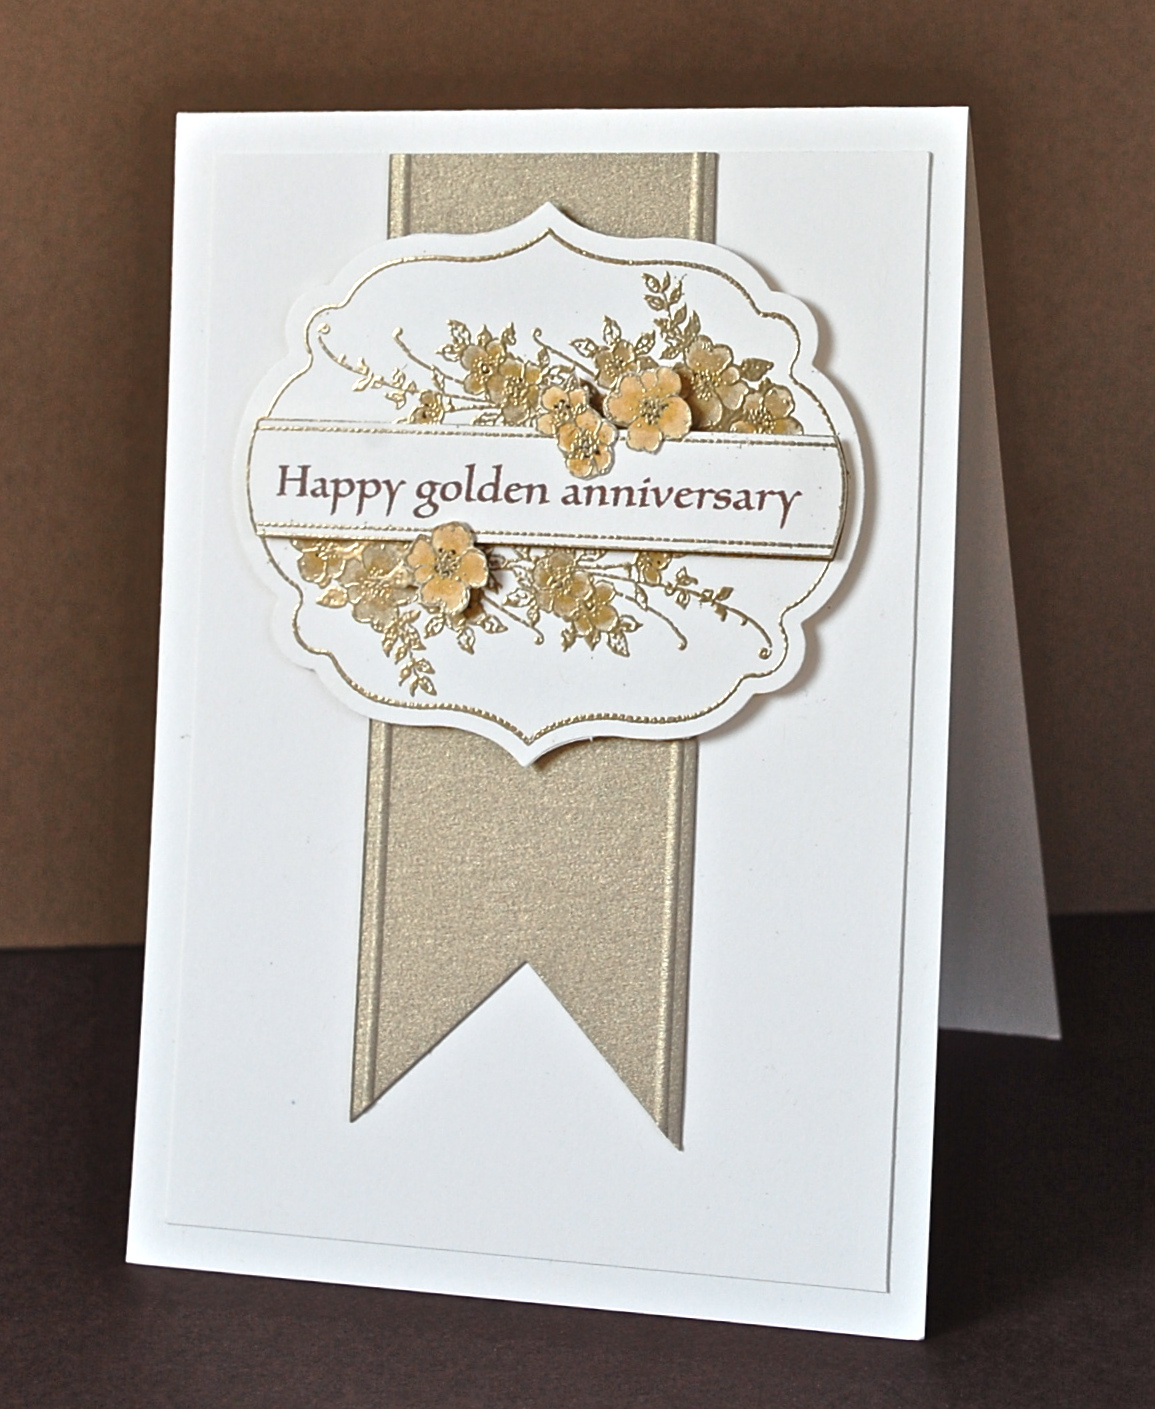 Stampin up ideas and supplies from vicky at crafting